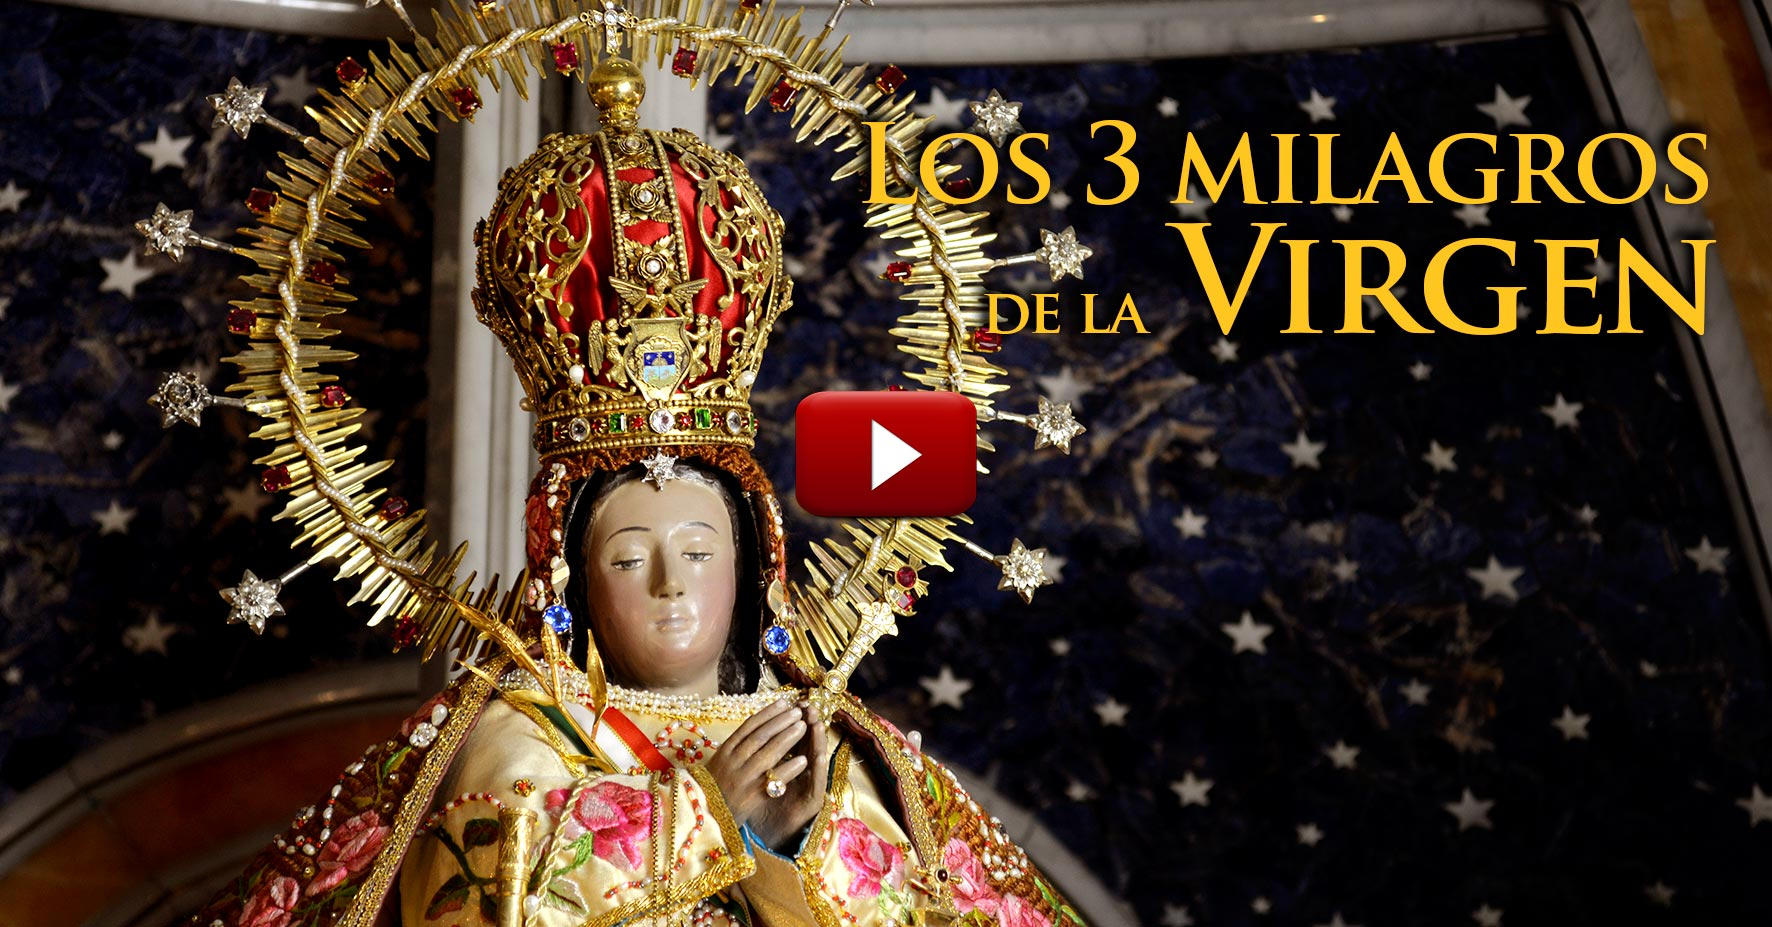 VIDEO Los 3 milagros de la Virgen del Pueblito